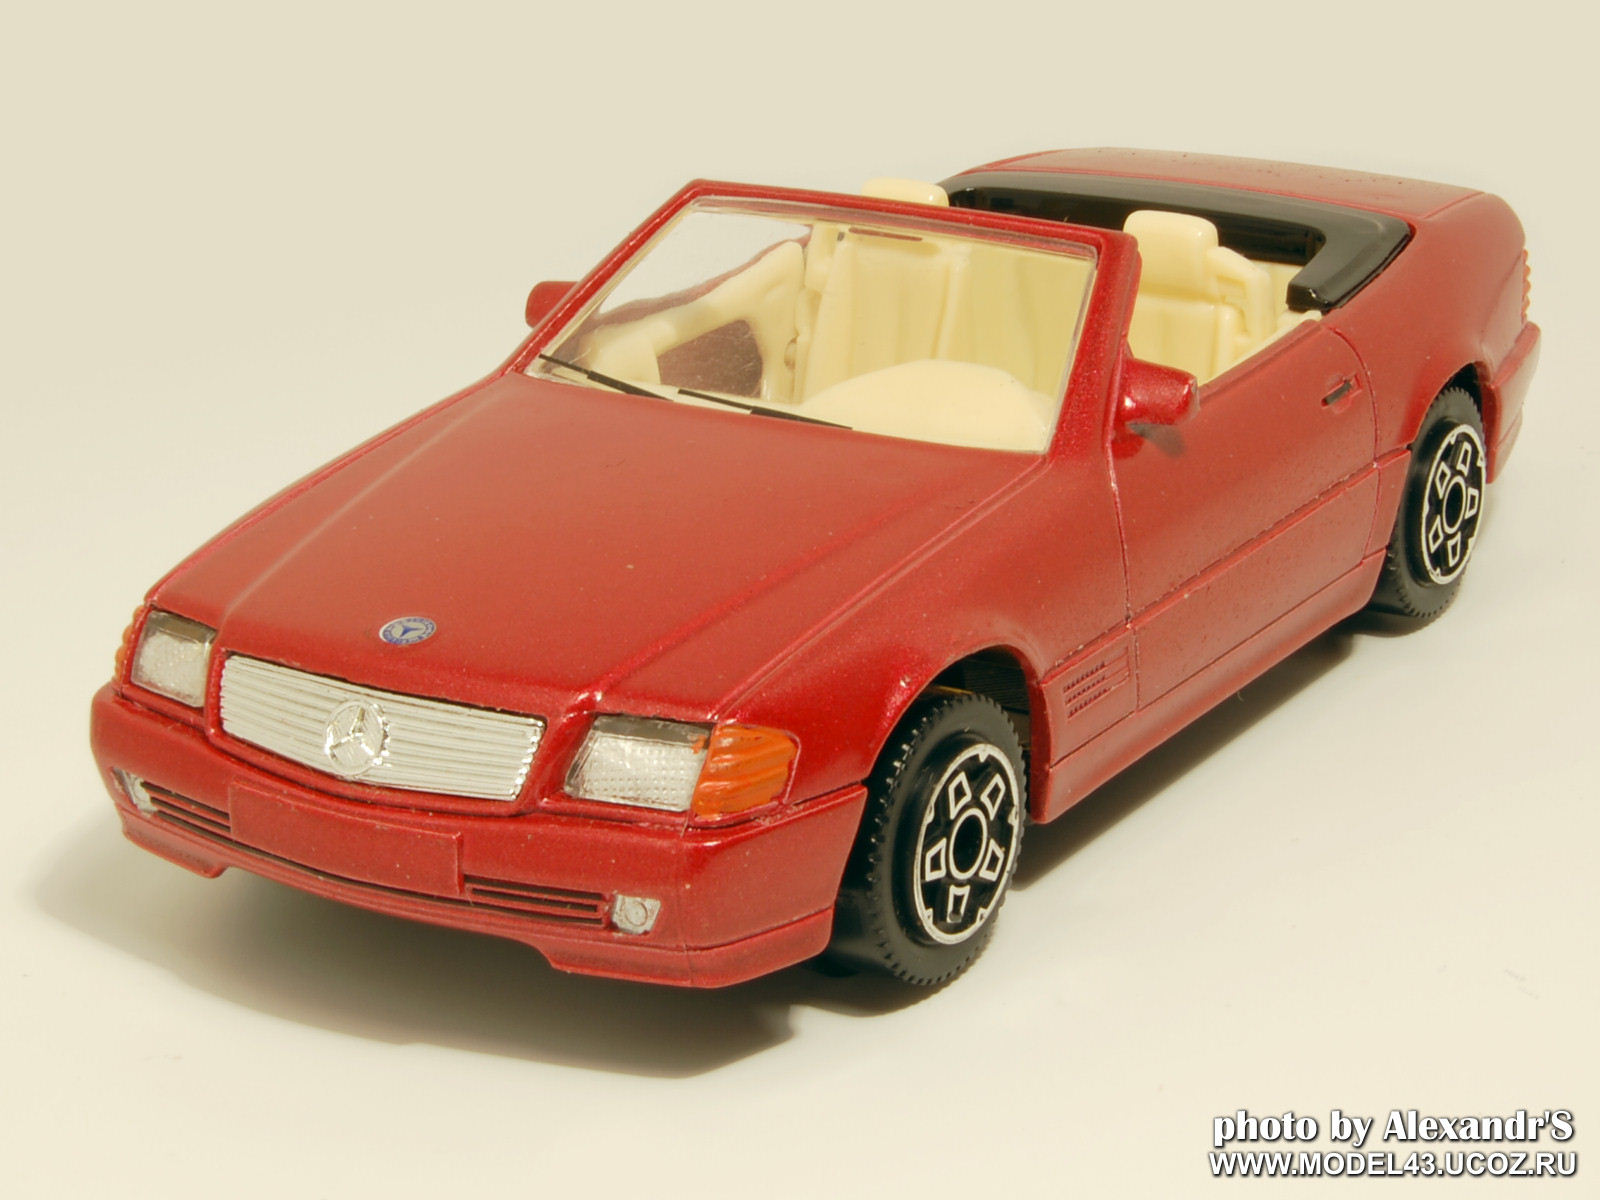 Bburago: 1989 Mercedes-Benz 300SL R129 - Red Metallic (cod.4181) in 1:43